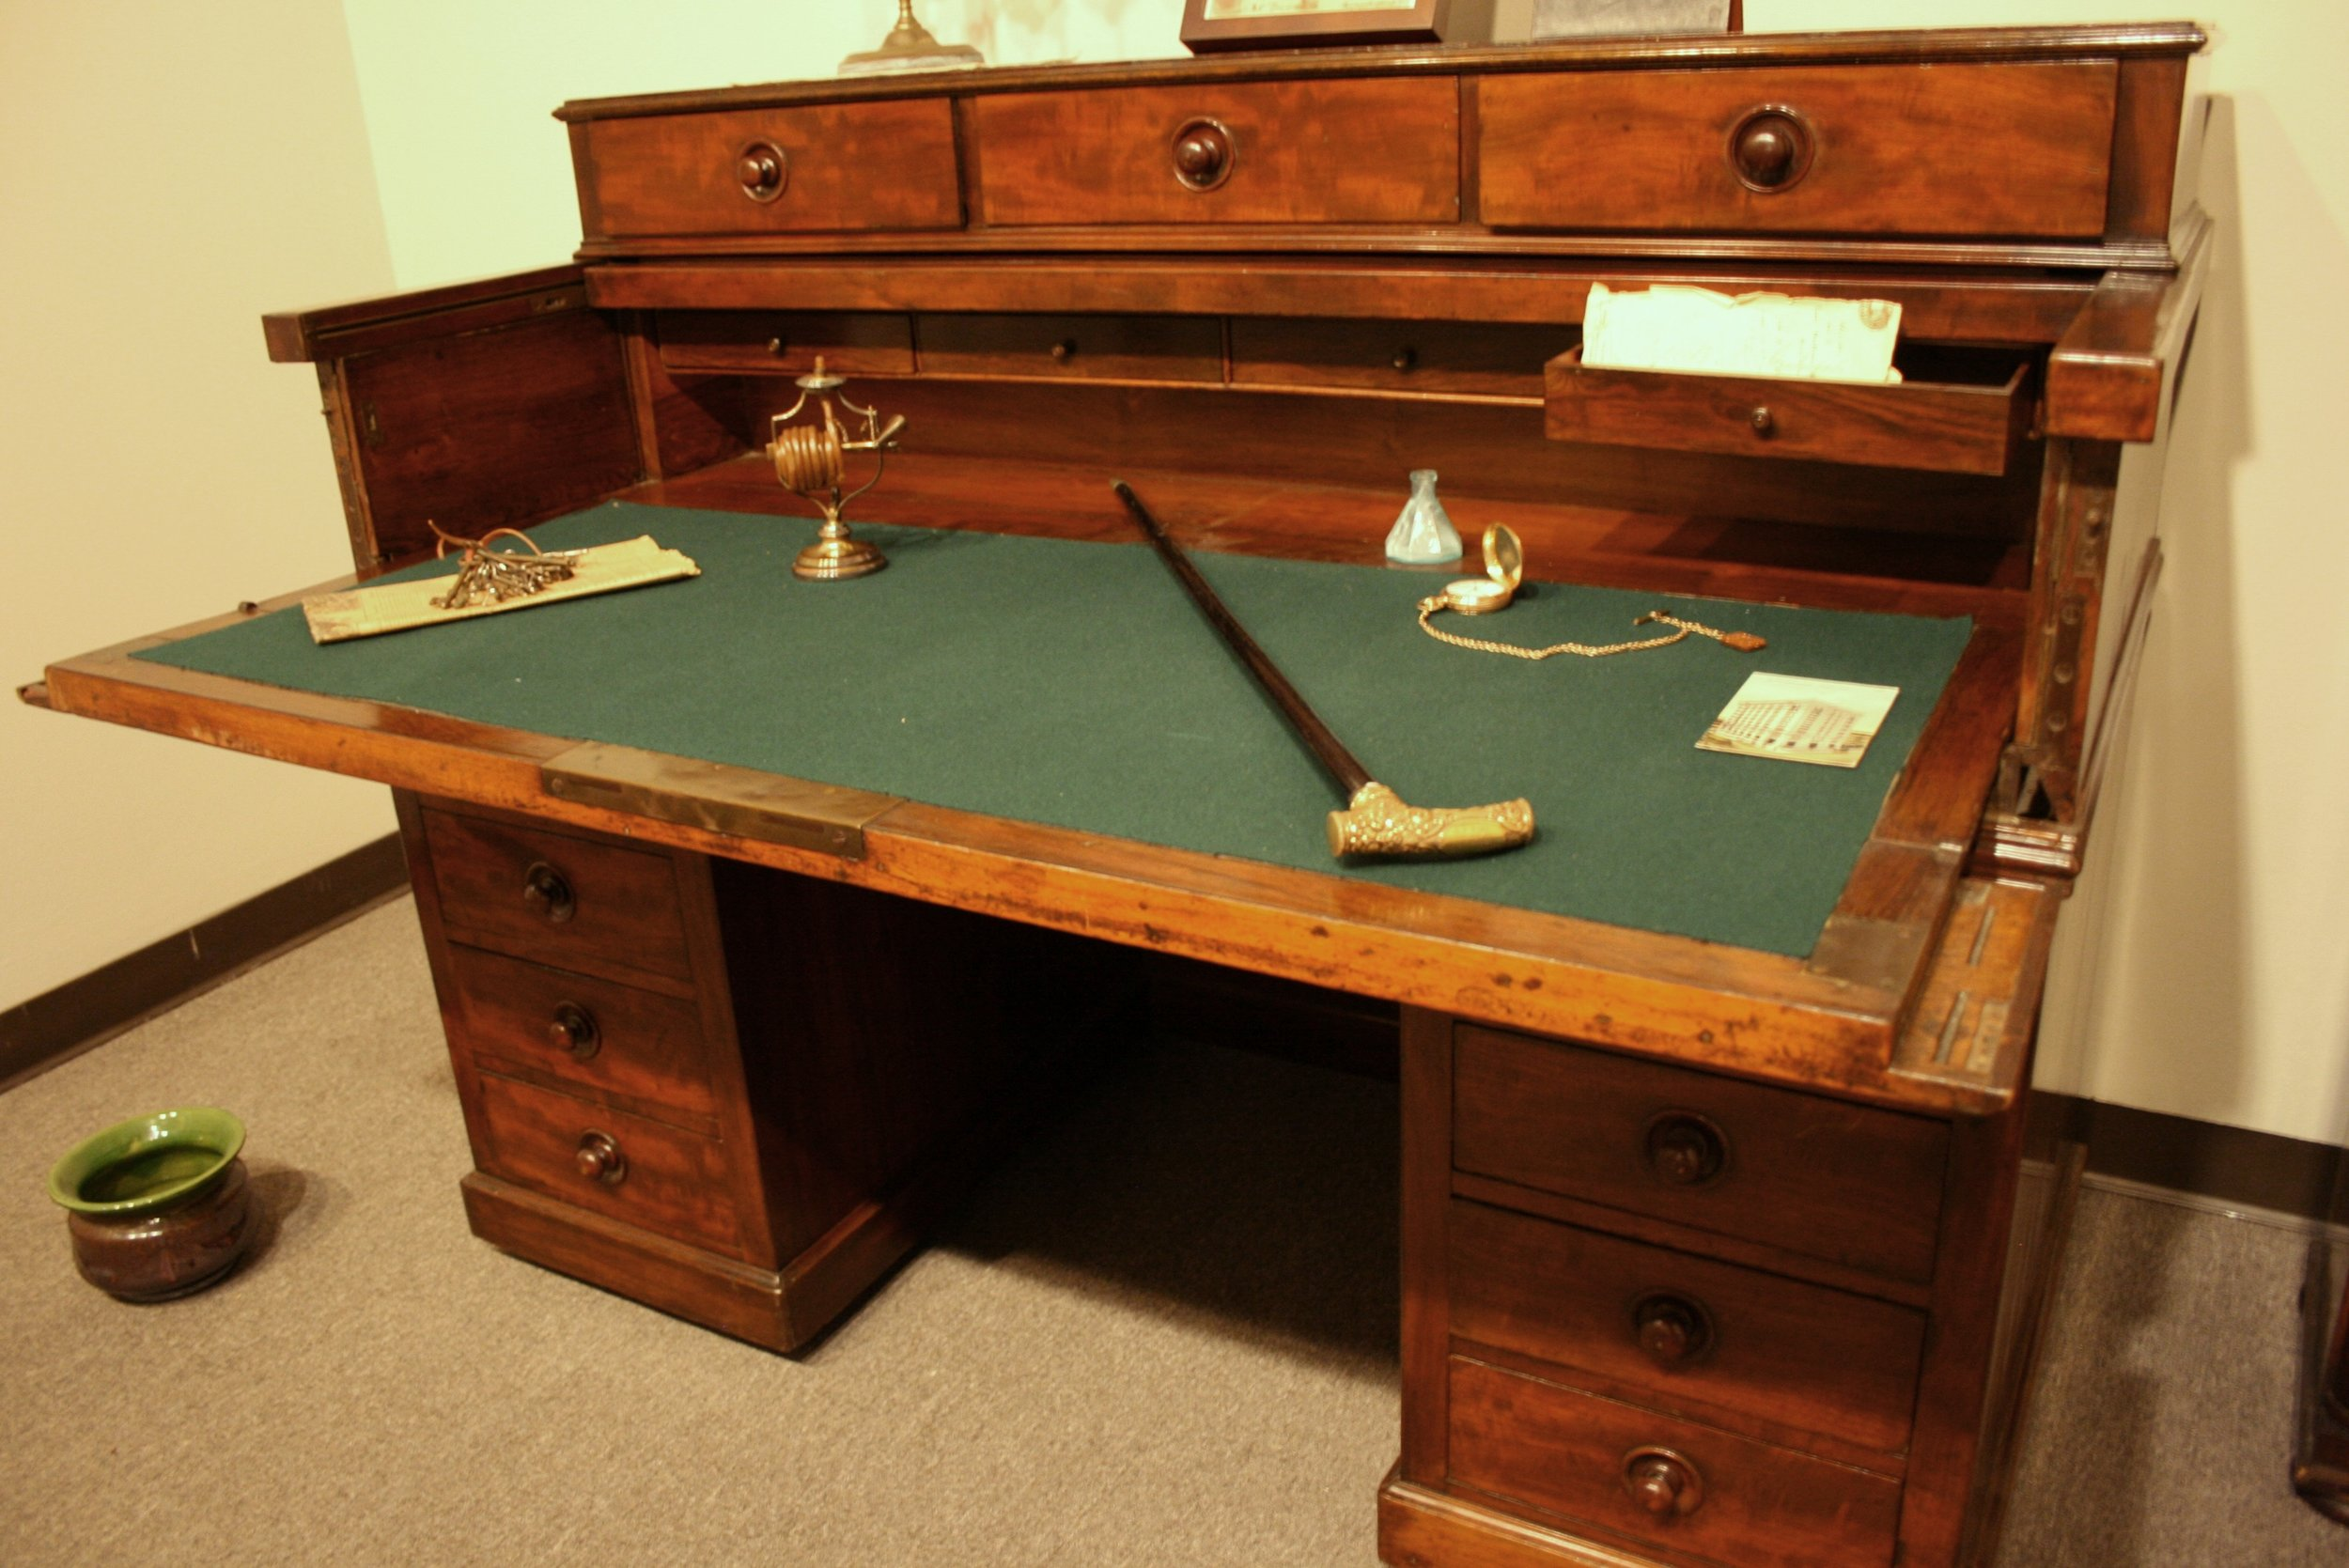 This desk was used by B. A. Shepherd during his tenure as President of the First National Bank in Houston.  The Heritage Society Permanent Collection